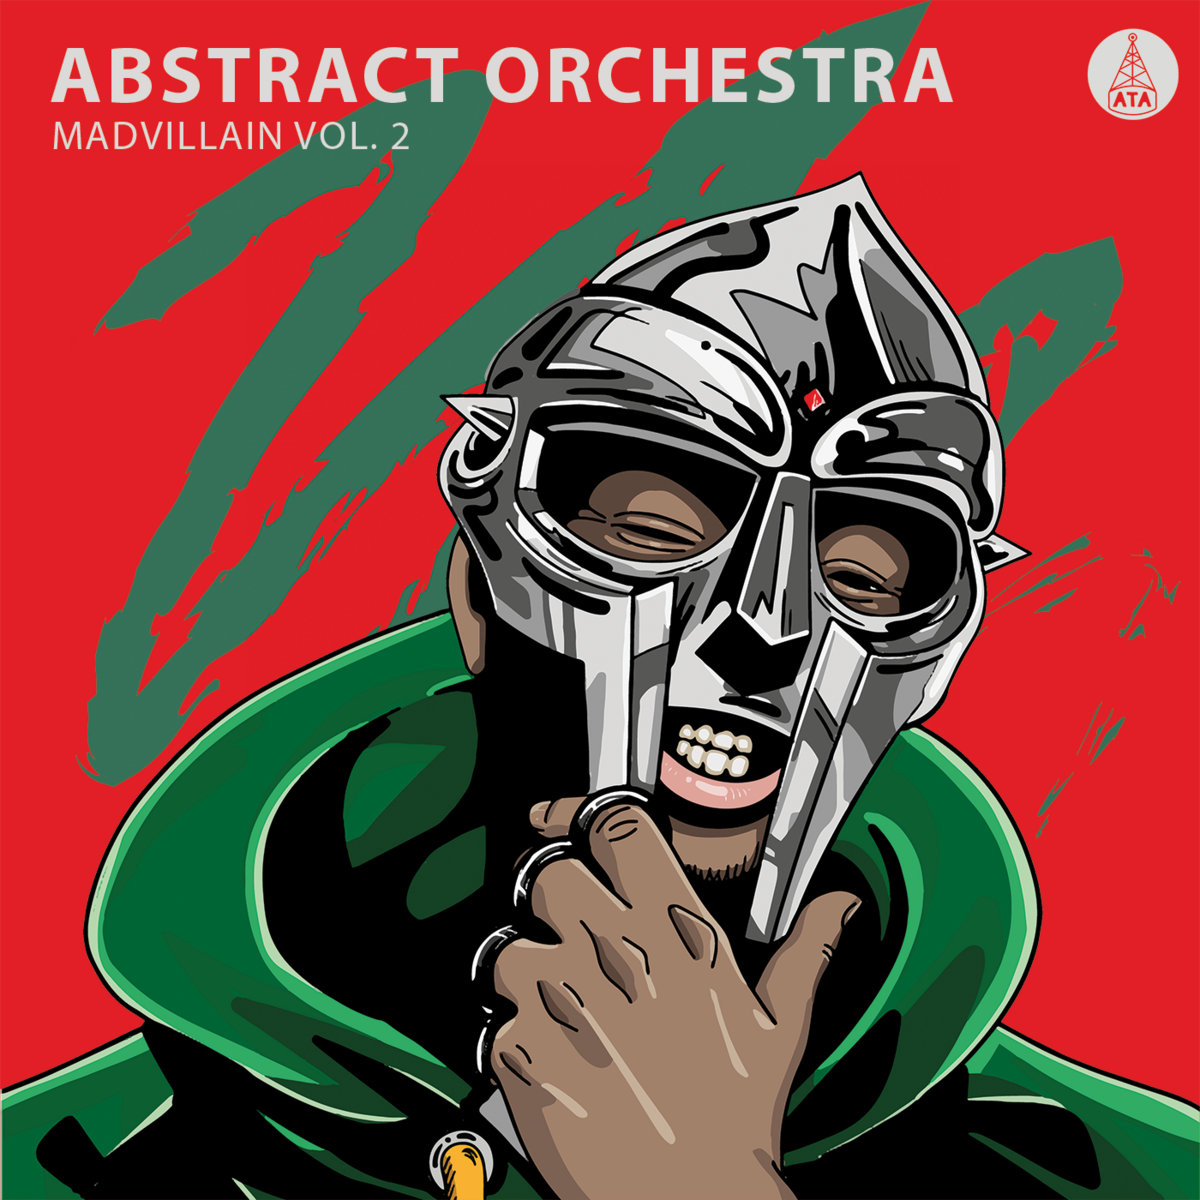 Abstract Orchestra - Madvillain, Pt. 2 [LP]